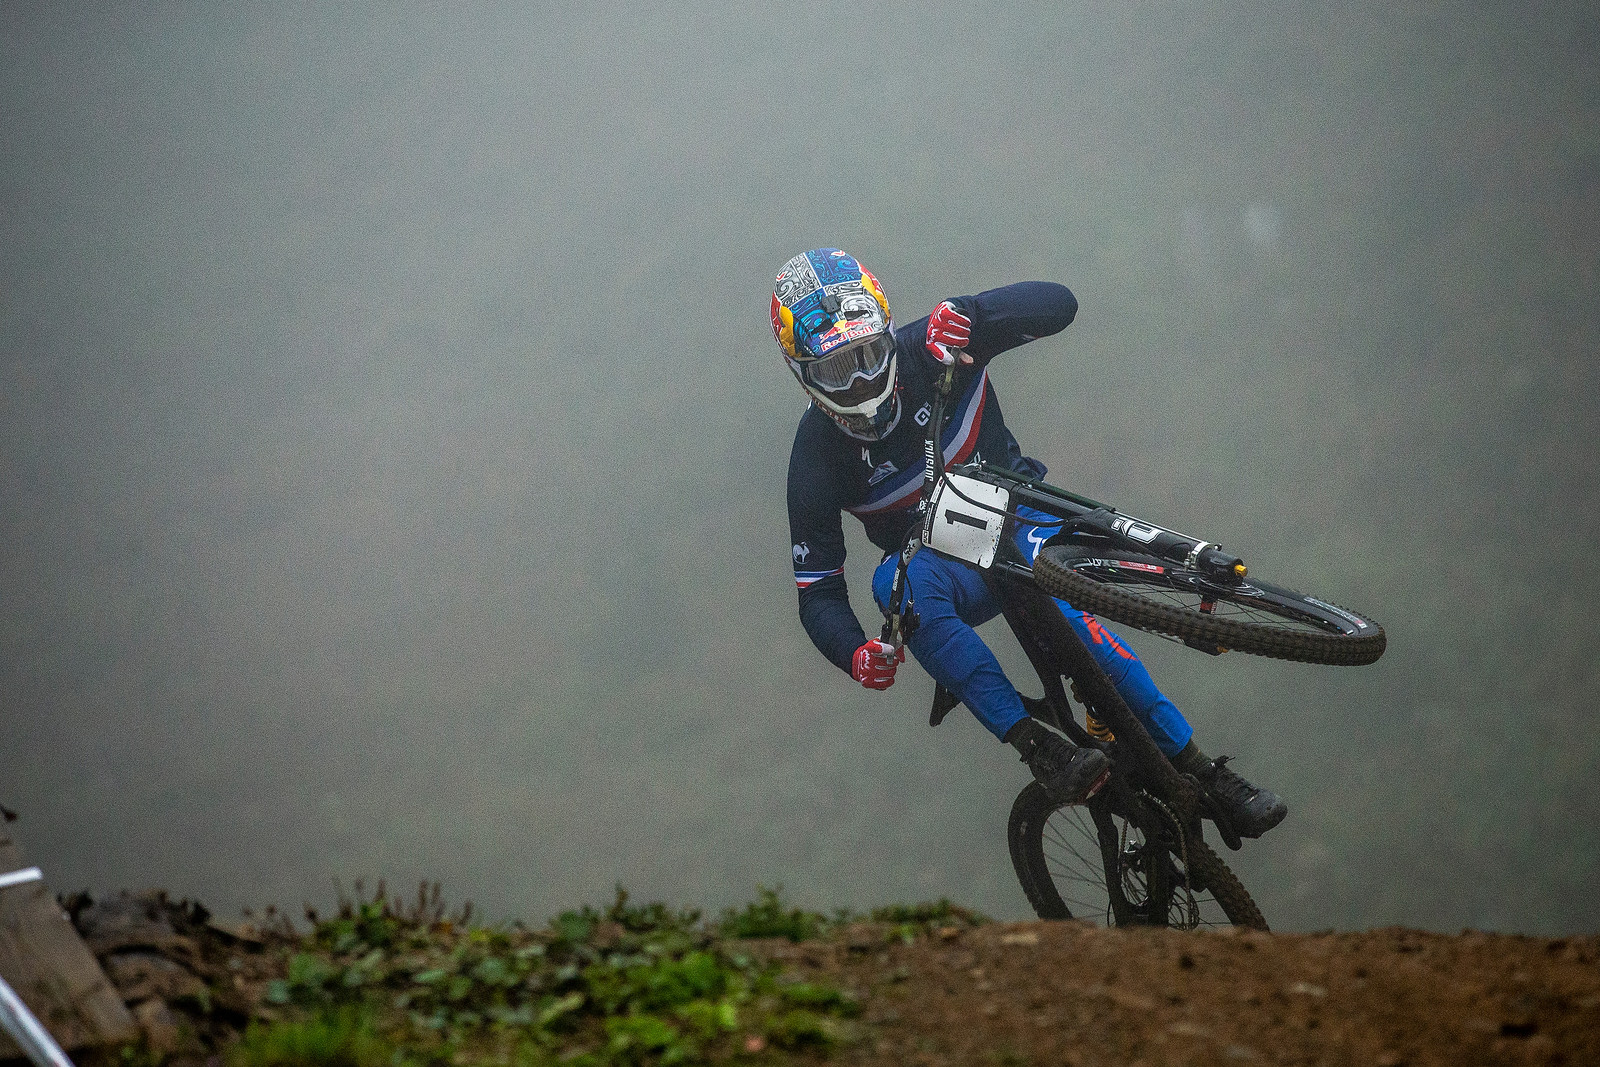 Loic Bruni - WORLD CHAMPS WHIPFEST - Mountain Biking Pictures - Vital MTB